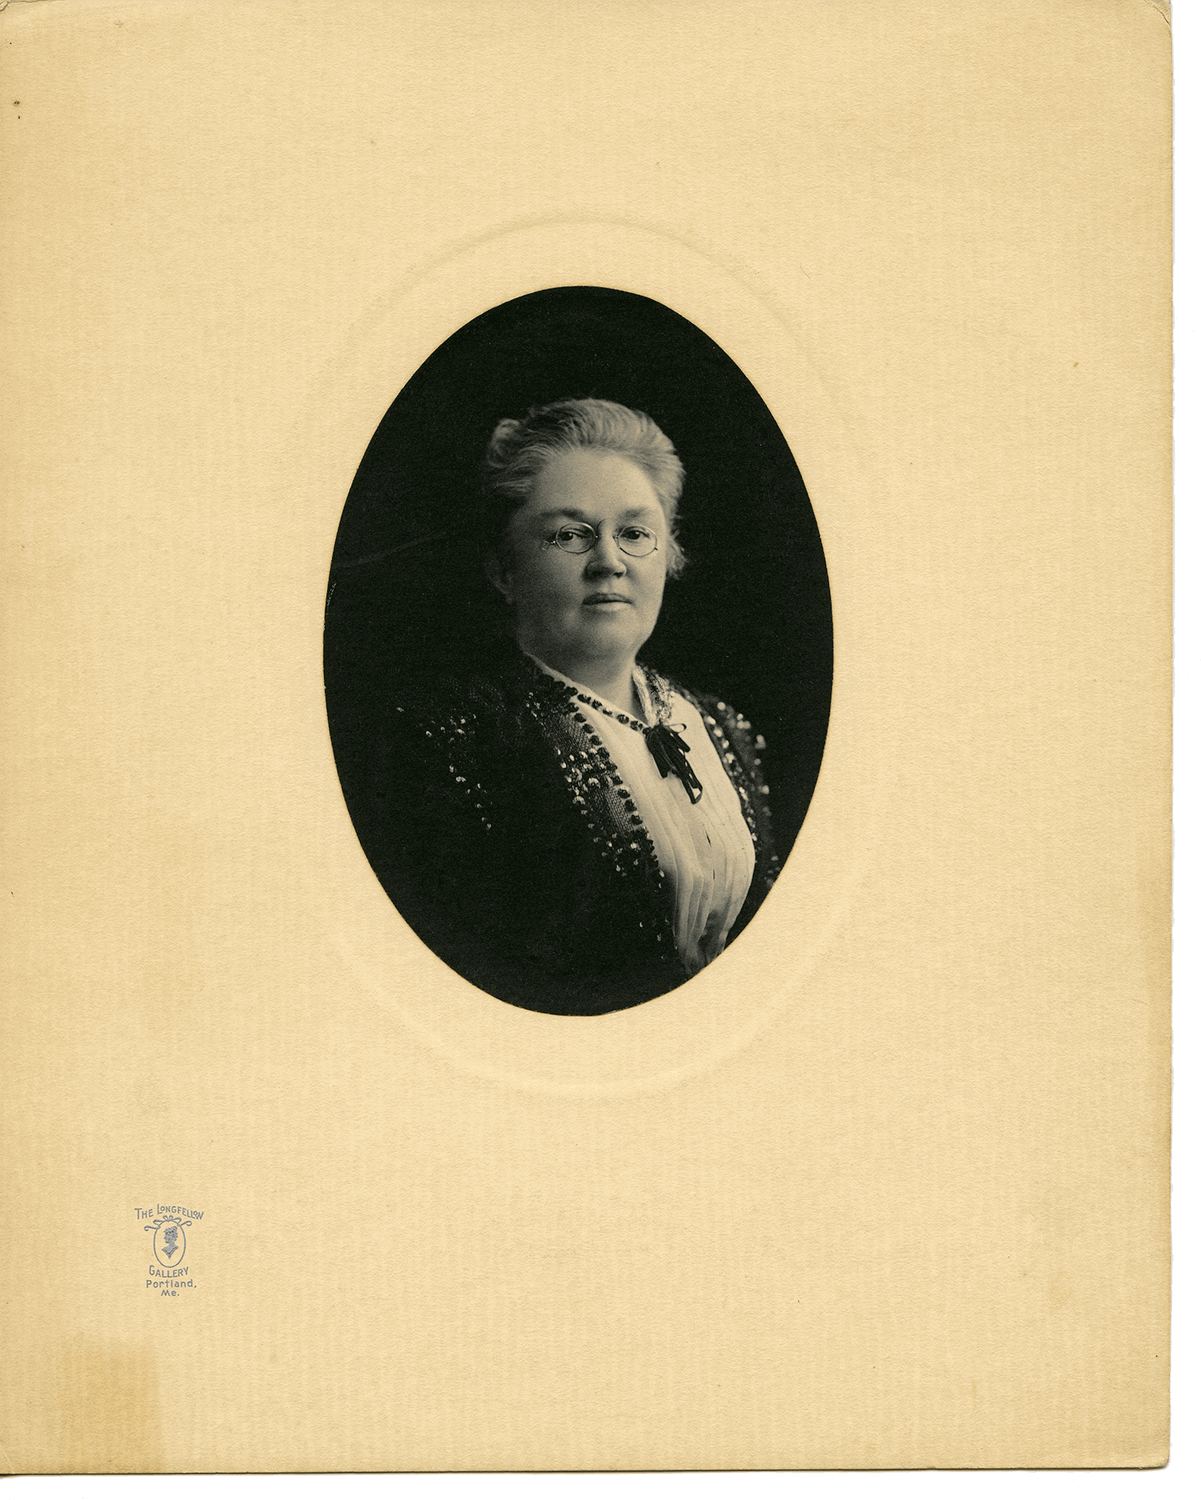 Katherine Lee Bates (1859-1929), Poet (Photo: The Longfellow Gallery, Portland, ME)